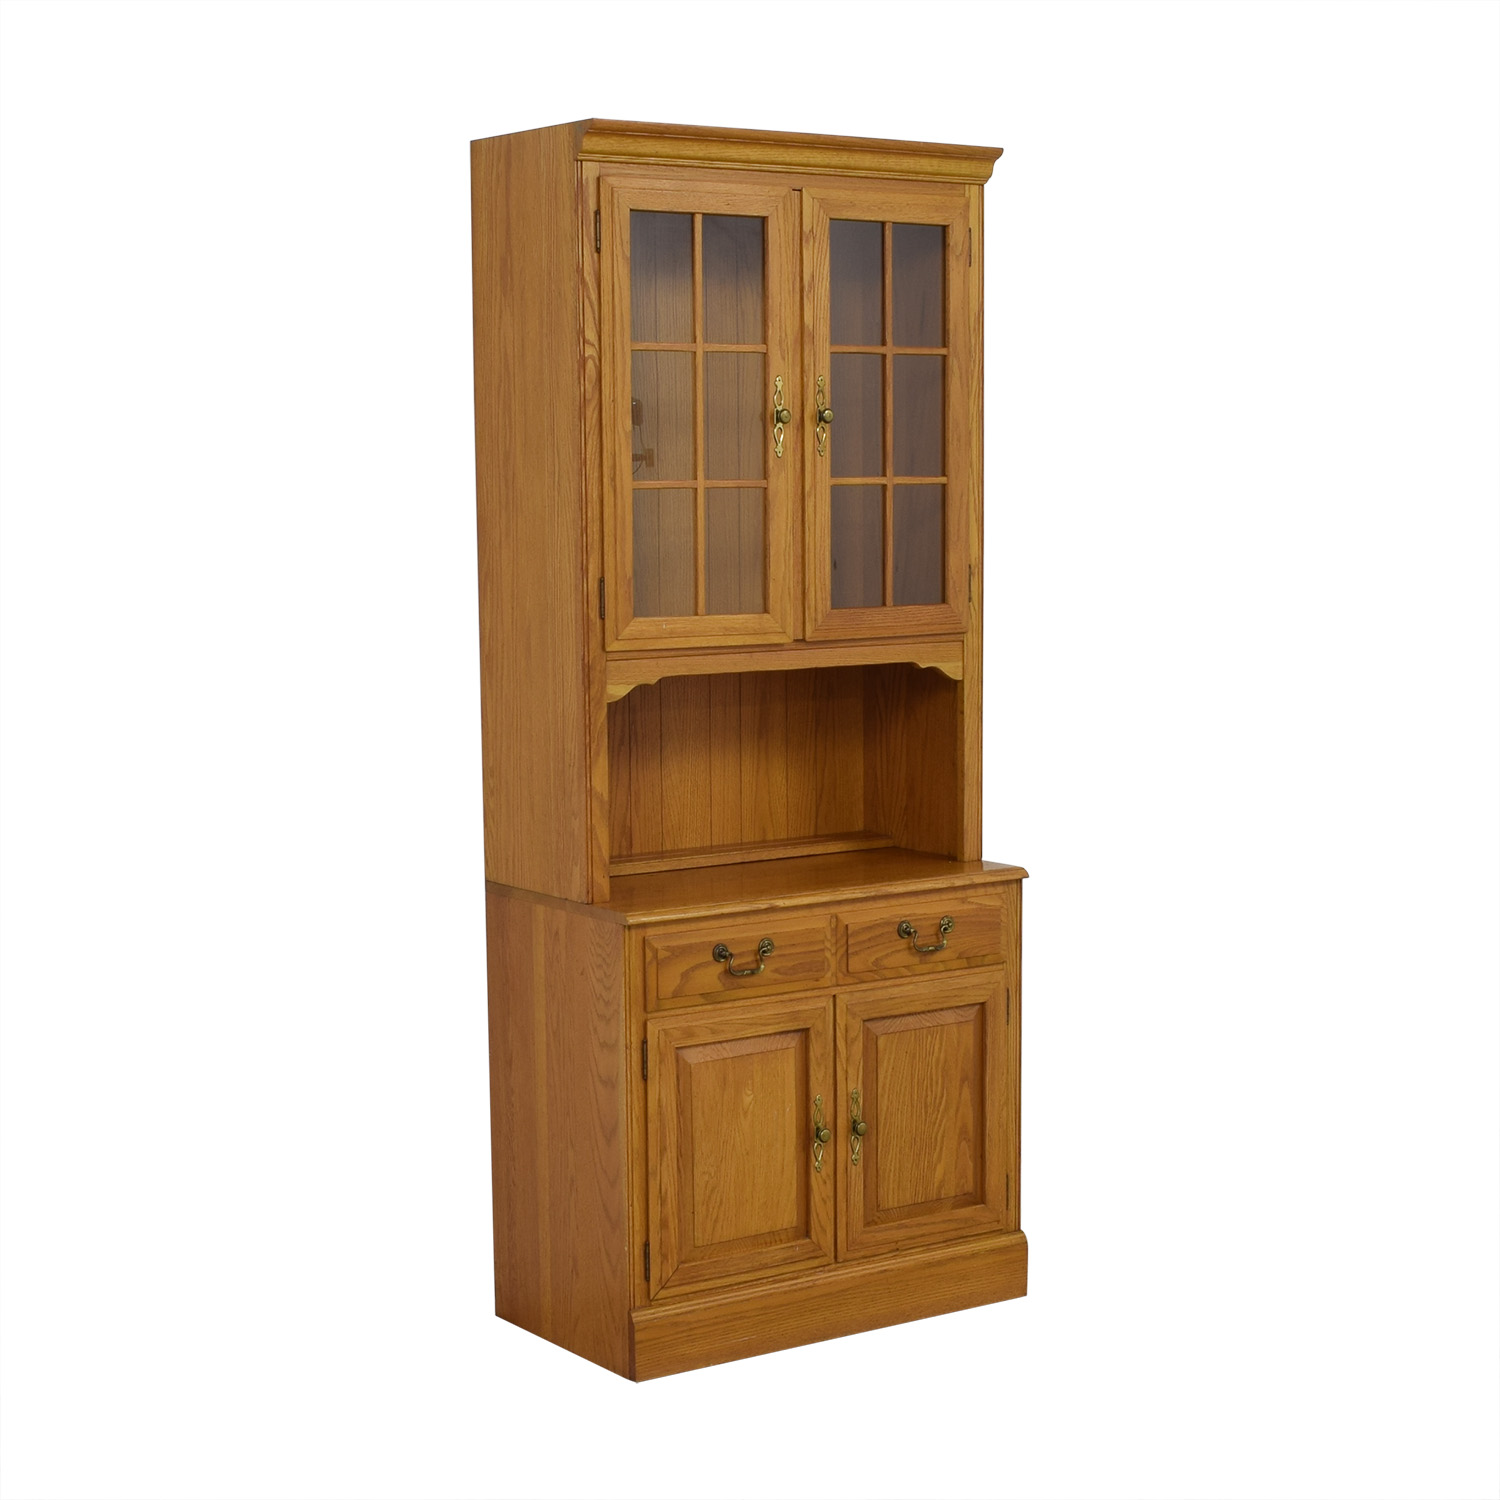 Ethan Allen Canterbury Oak Chippendale Display Case and Cabinet coupon